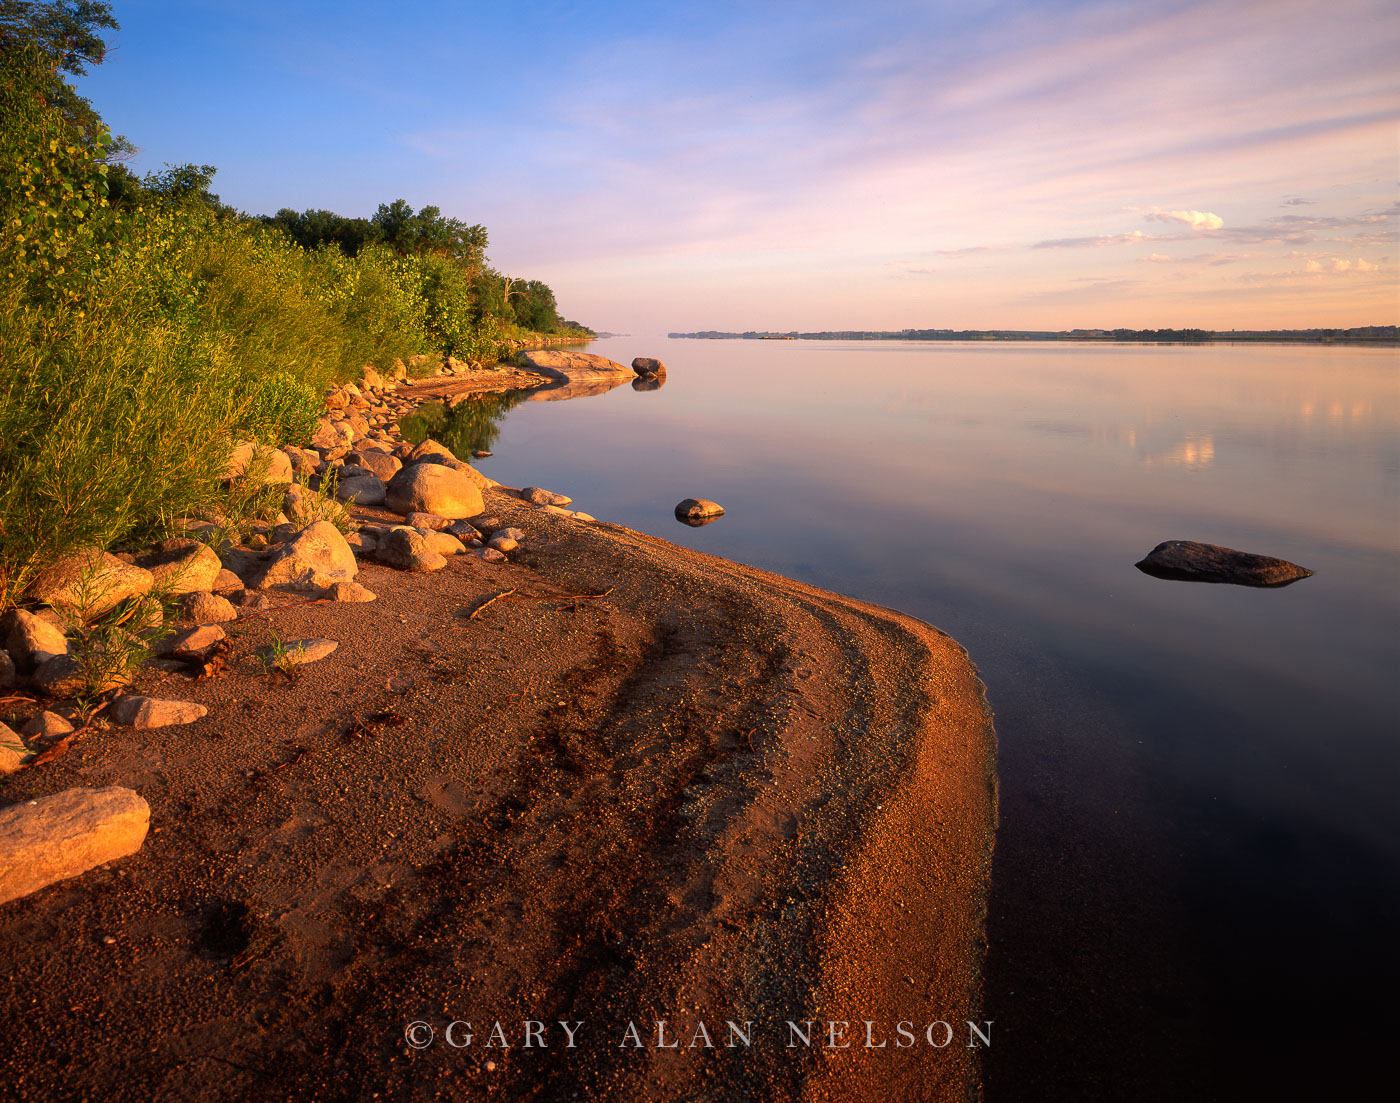 minnesota river, state park, shore, calm, waters, photo